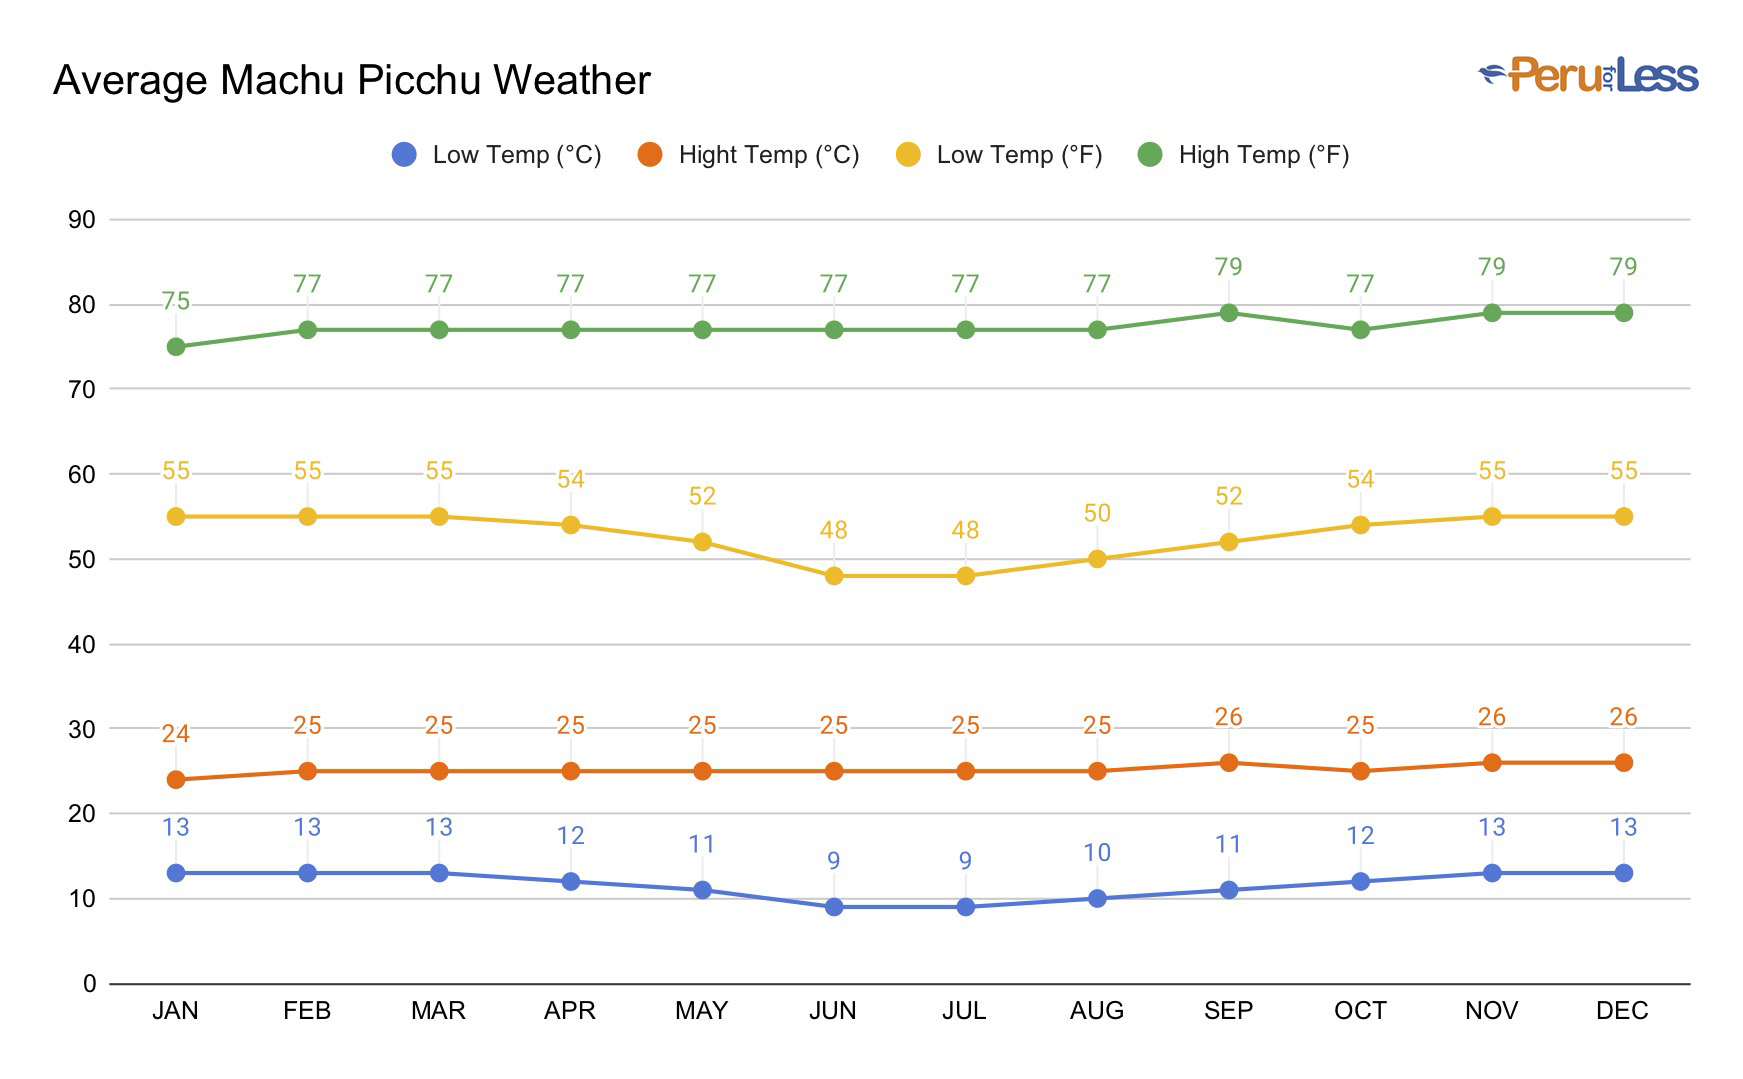 Graph of the month by month average weather in Machu Picchu in both Fahrenheit and Celsius.